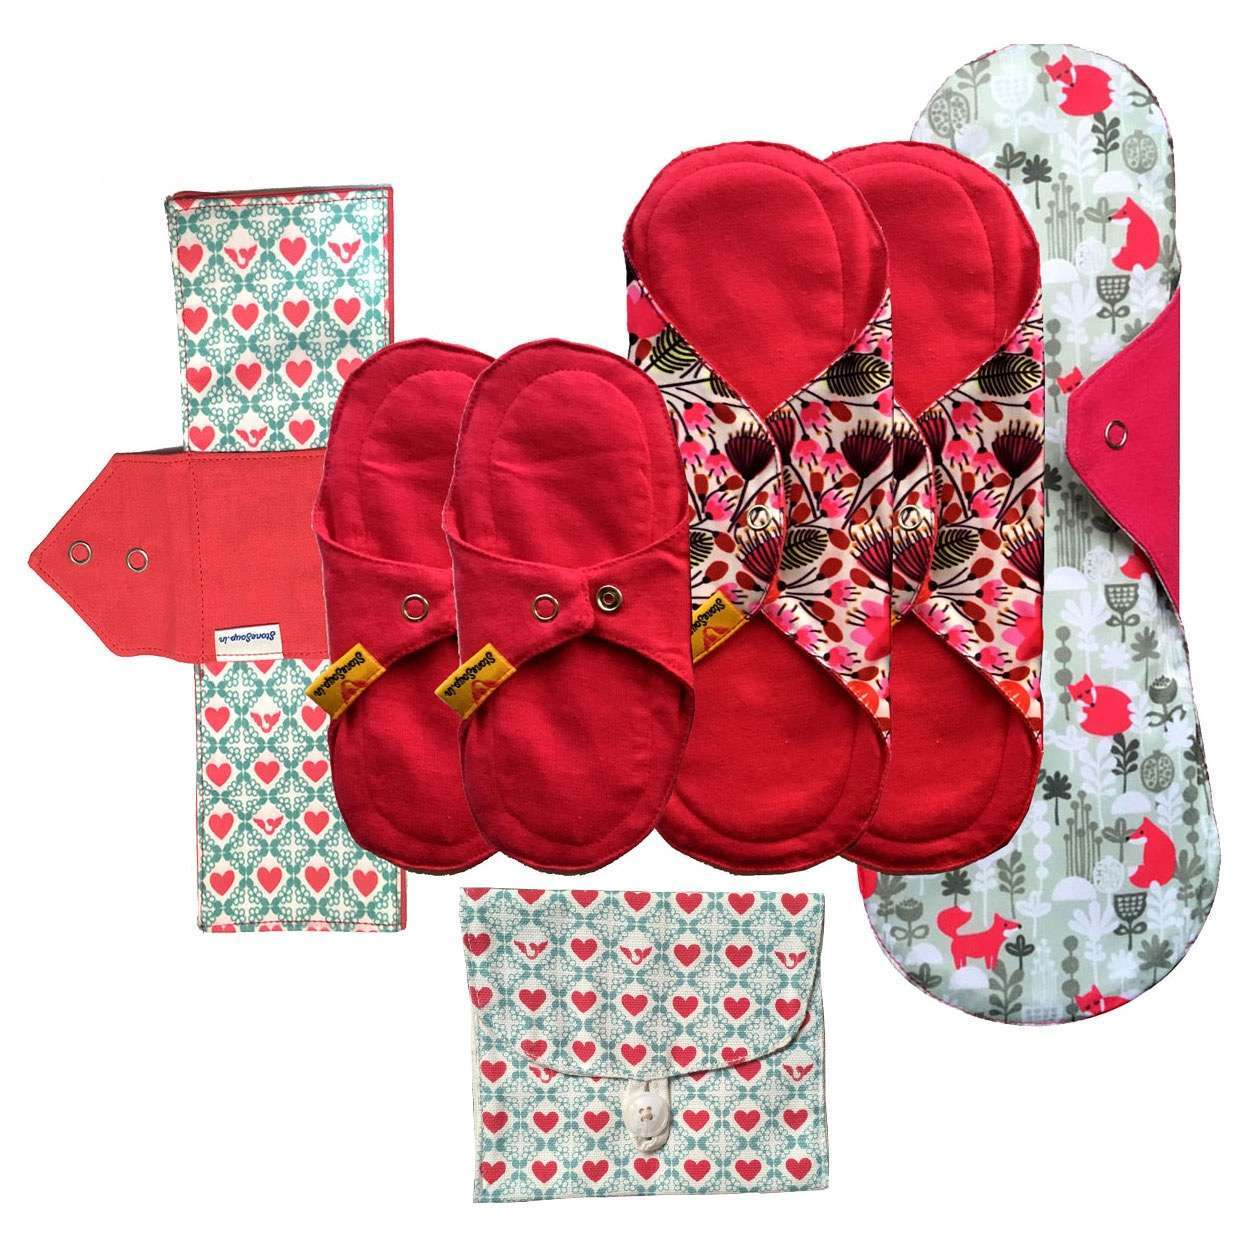 2 panty liners (small) + 2 classic (regular) + 1 foldable (regular) + 1 Heavy (large) + 1 pouch to carry back soiled pad